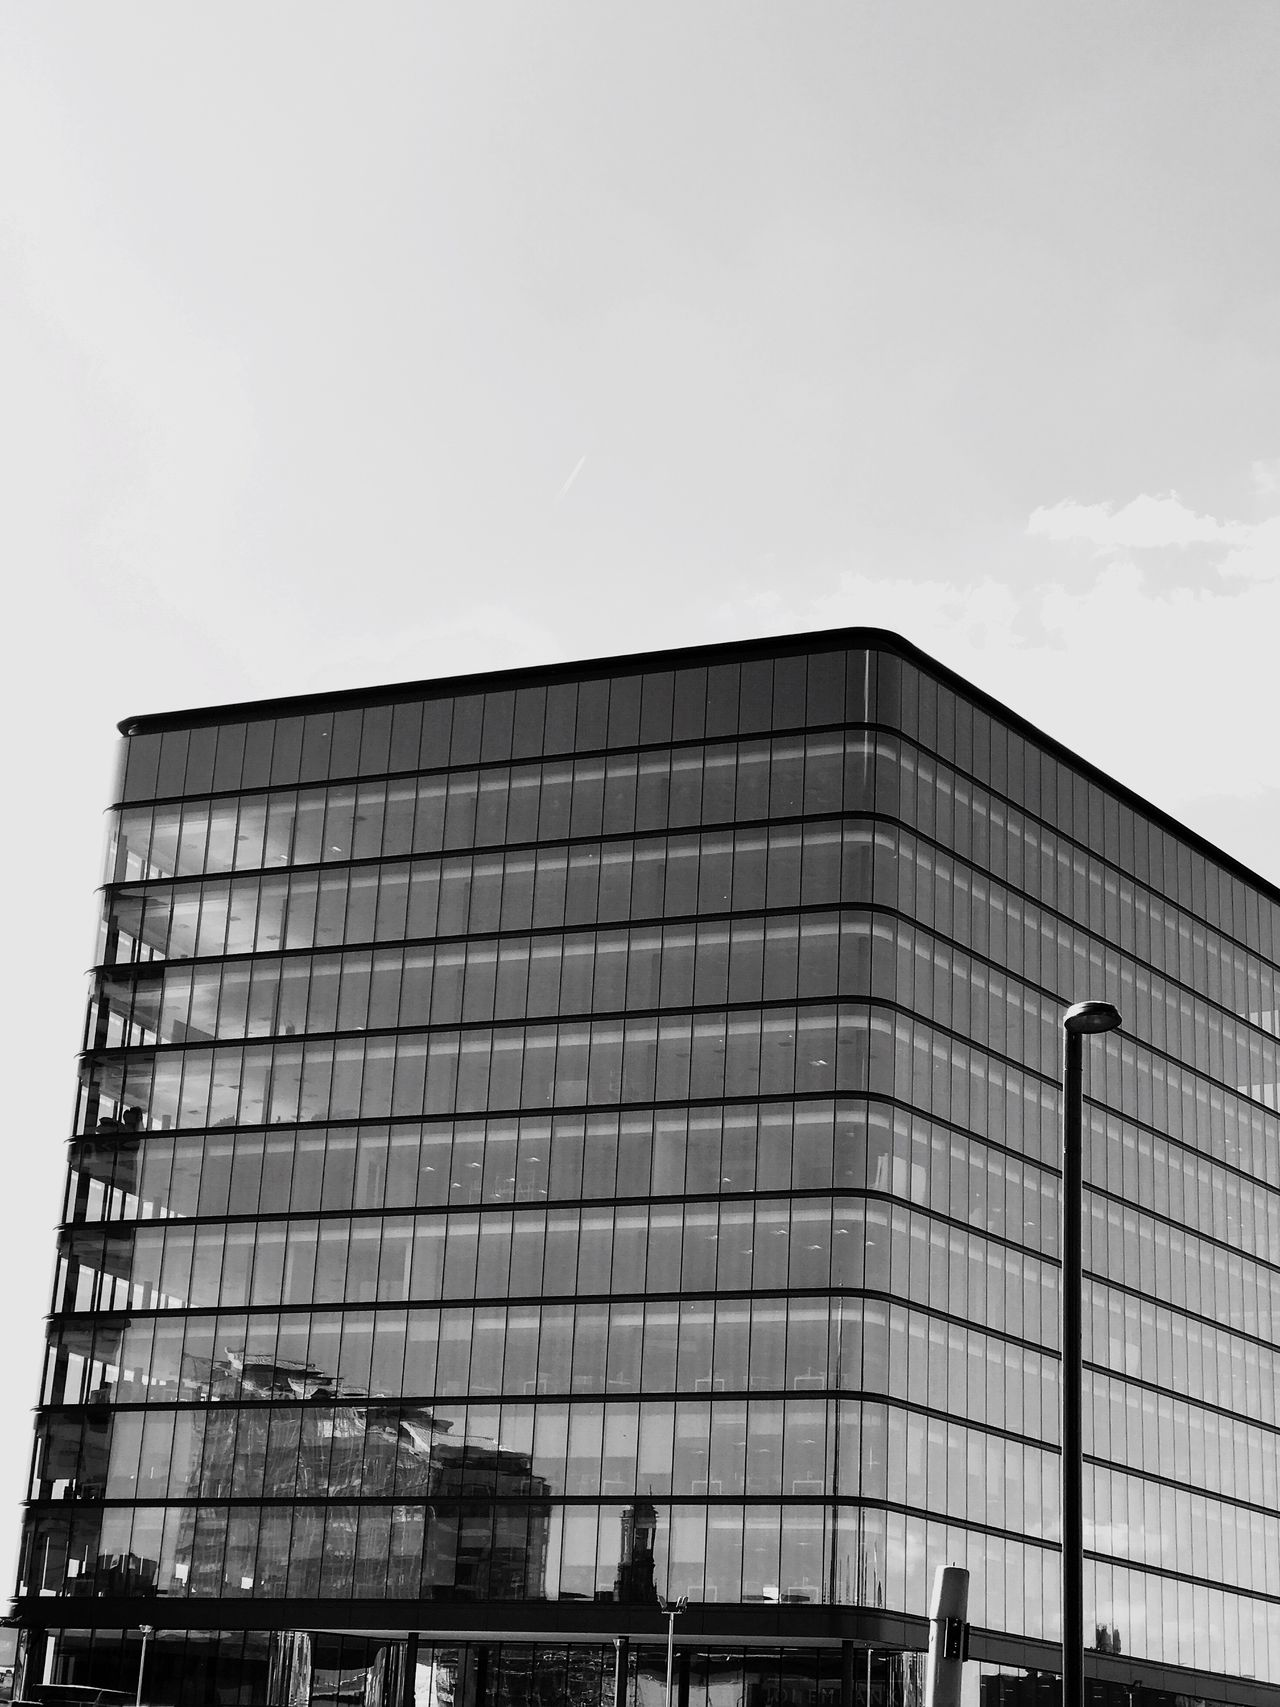 Modern architecture black and white The Architect - 2017 EyeEm Awards Architecture Built Structure Building Exterior Modern Sky Low Angle View Day Outdoors City No People Modern Architecture Blackandwhite Architecture Photography Architectural Feature EyeEm Architectural Design Building Reflections City EyeEm Gallery EyeEm Best Shots Reflection Buildings Architectural Detail